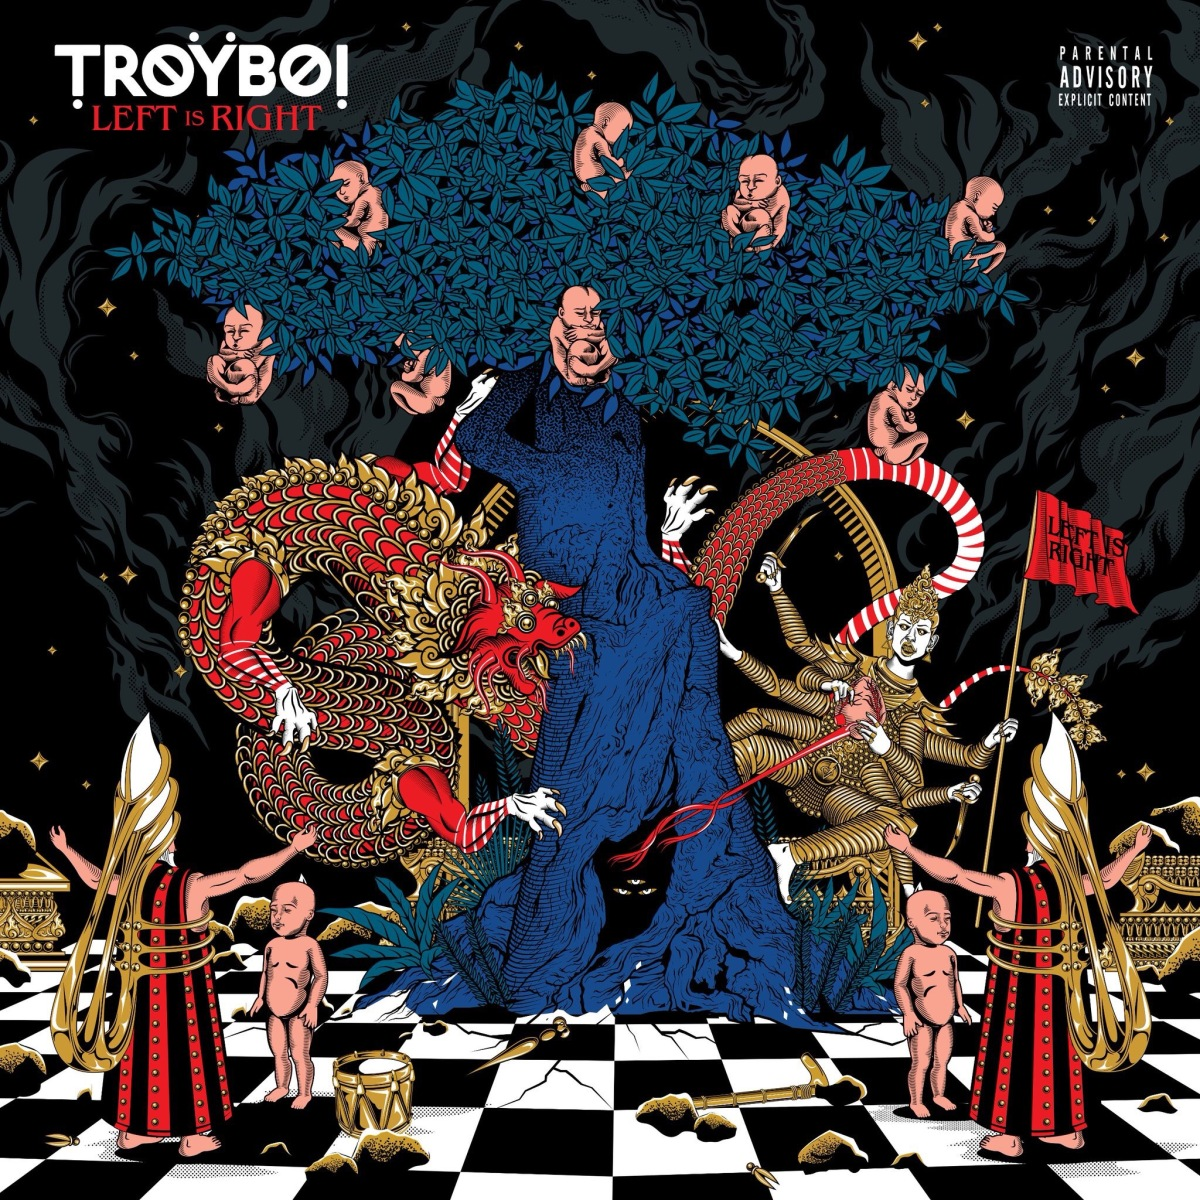 Review on TroyBoi's Album Left is Right